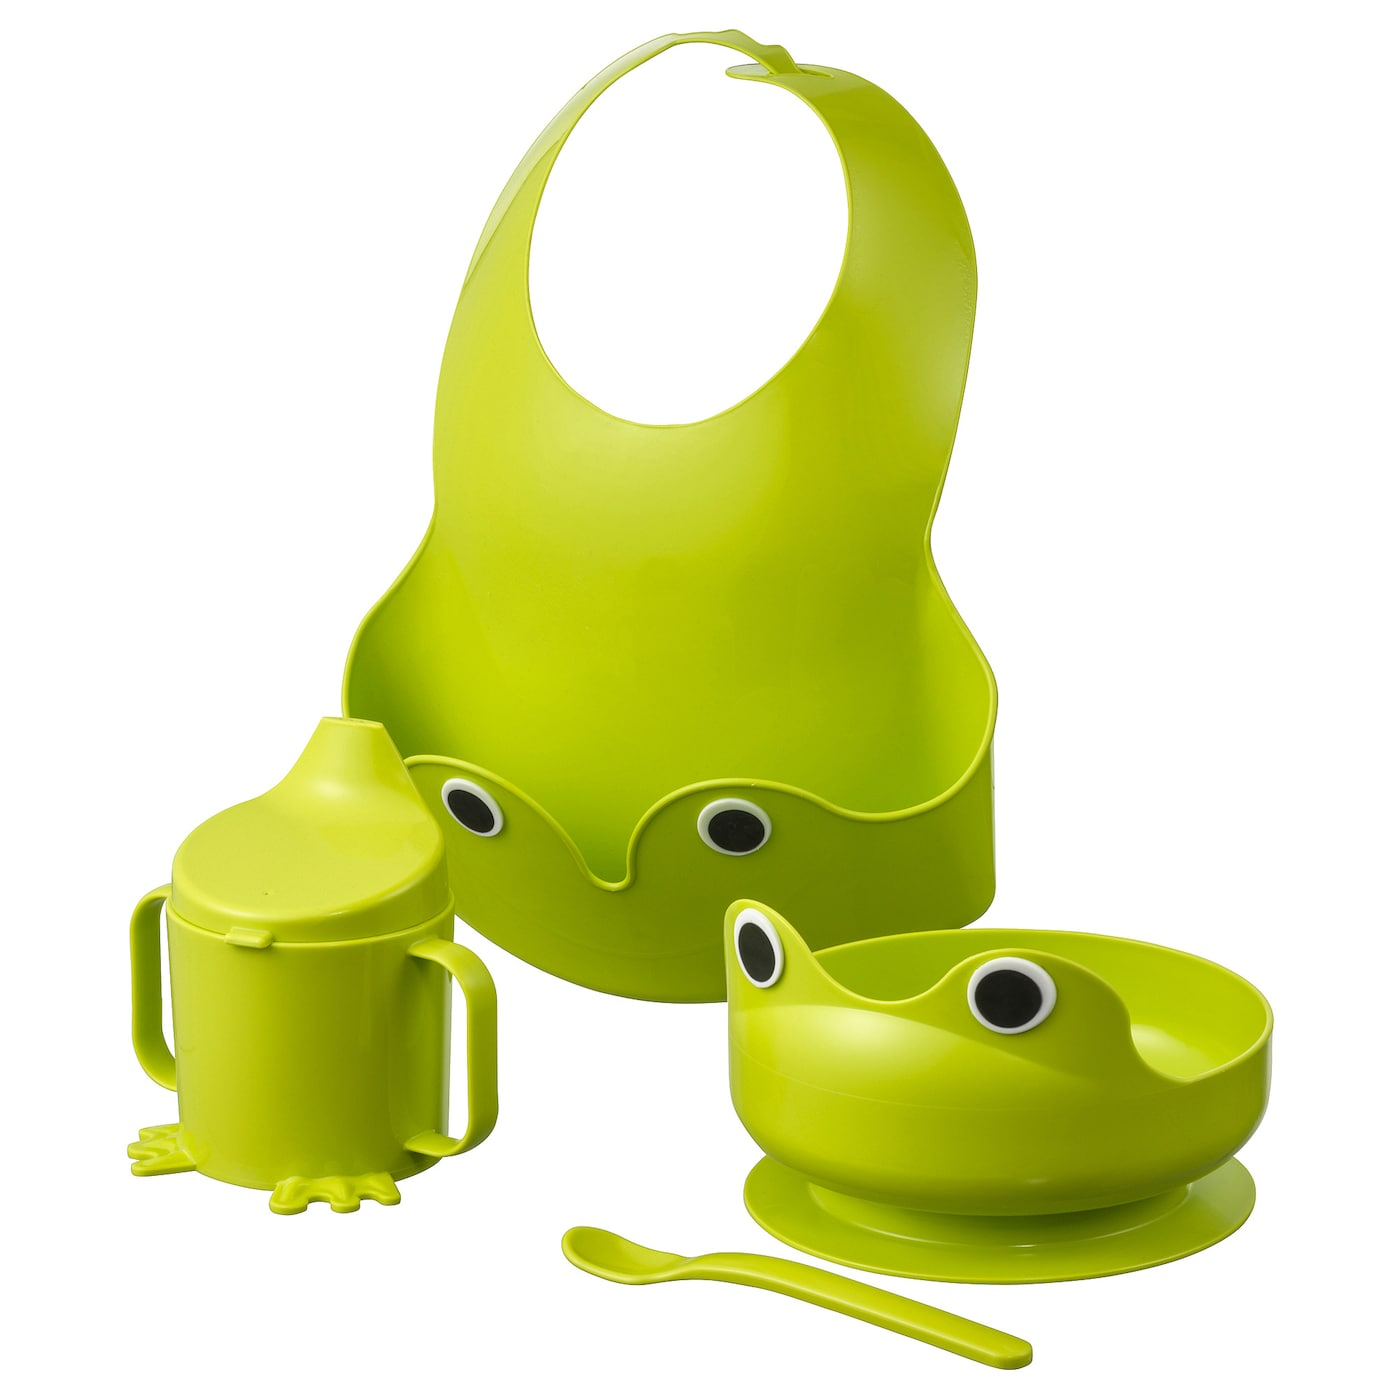 IKEA MATA 4-piece eating set Suction ring keeps the bowl in place.